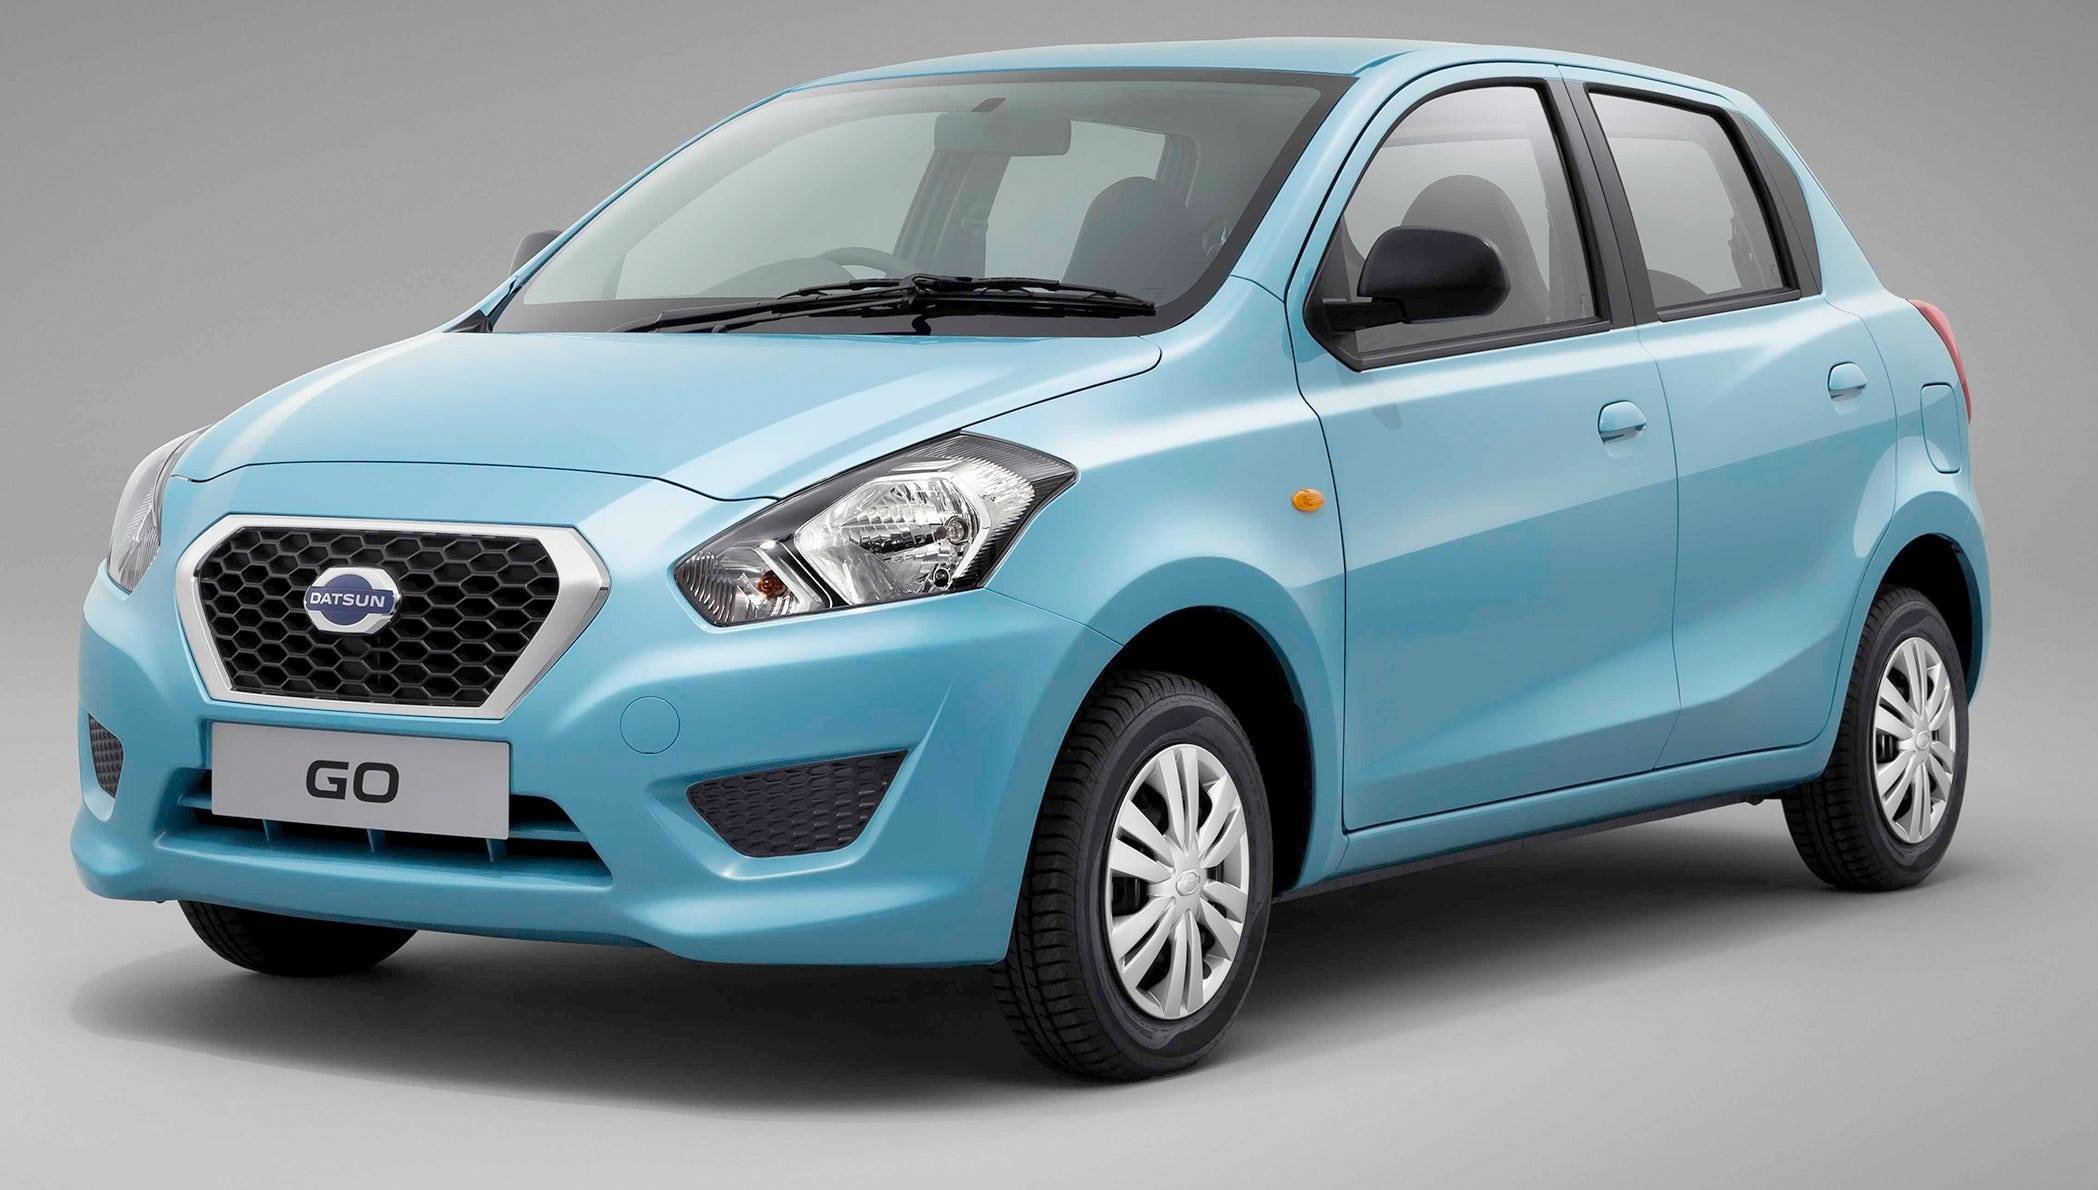 Latest Nissan Brings Back Datsun Brand With Go Car Free Download